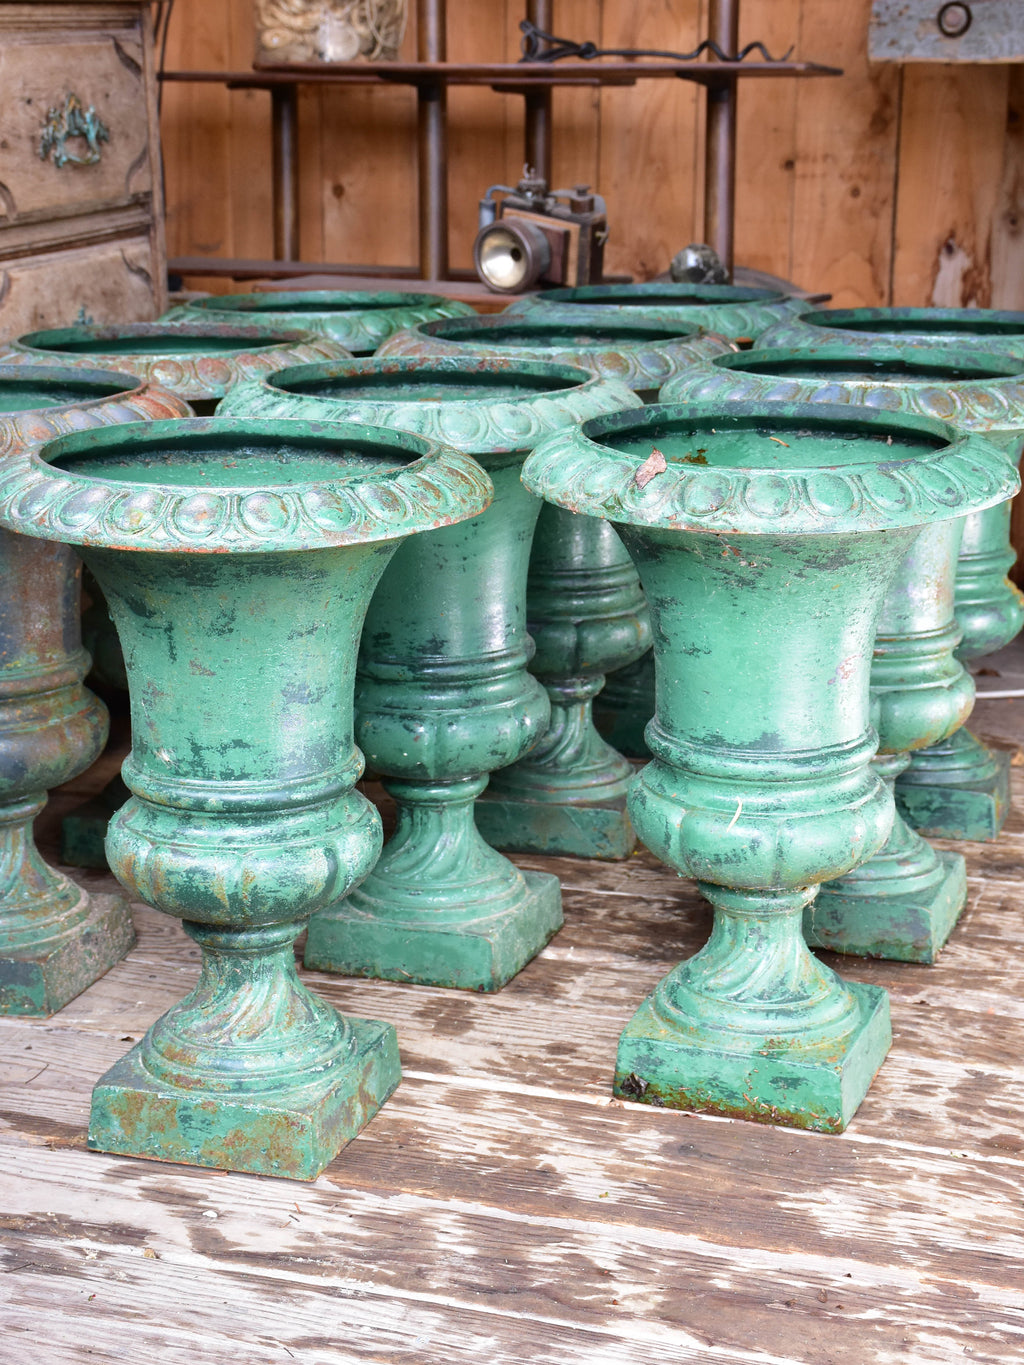 Rare collection of 10 Medici urns with green patina